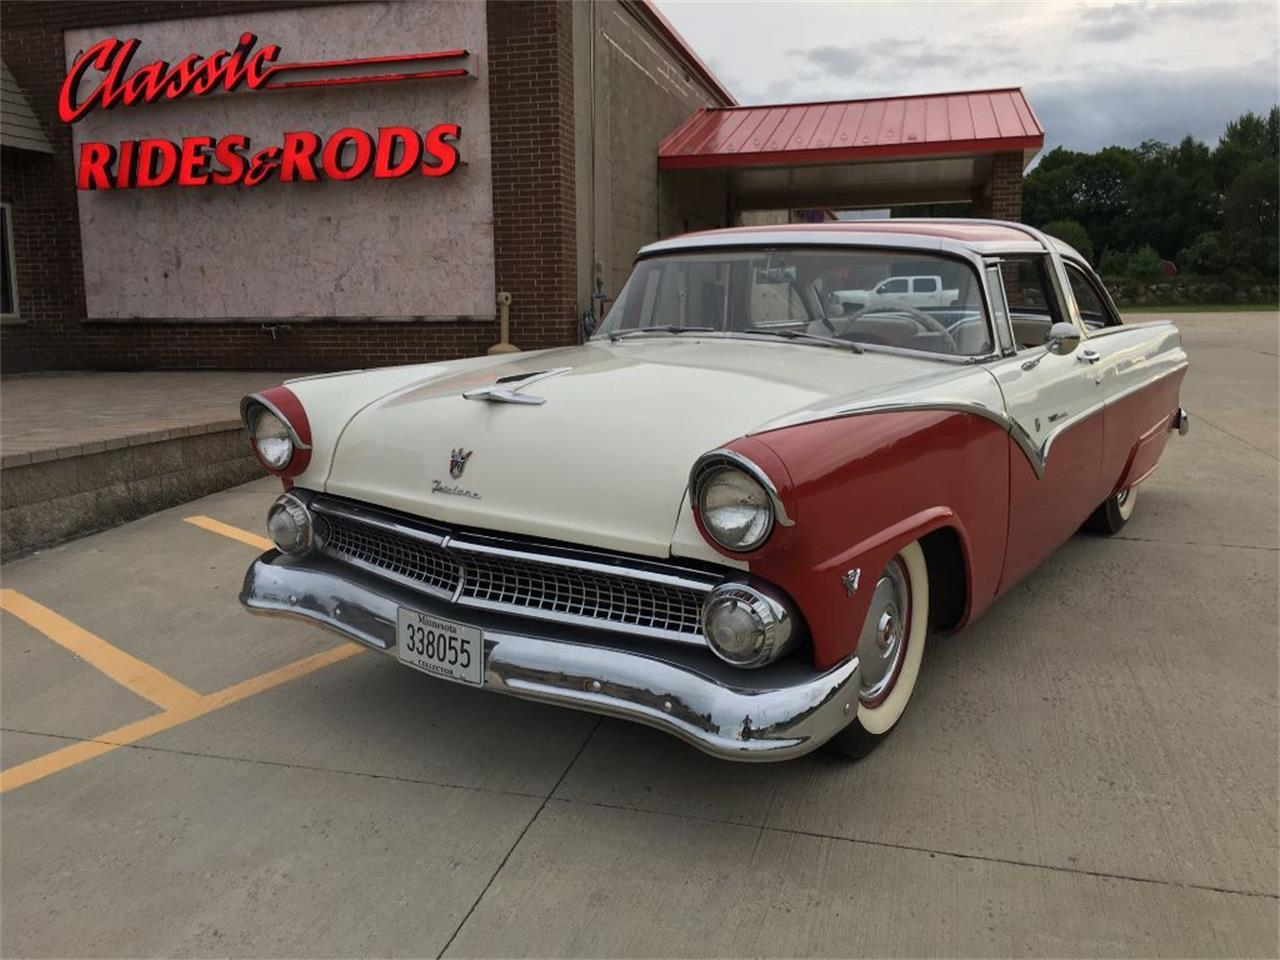 Large Picture of 1955 Crown Victoria - $21,700.00 Offered by Classic Rides and Rods - EGAS